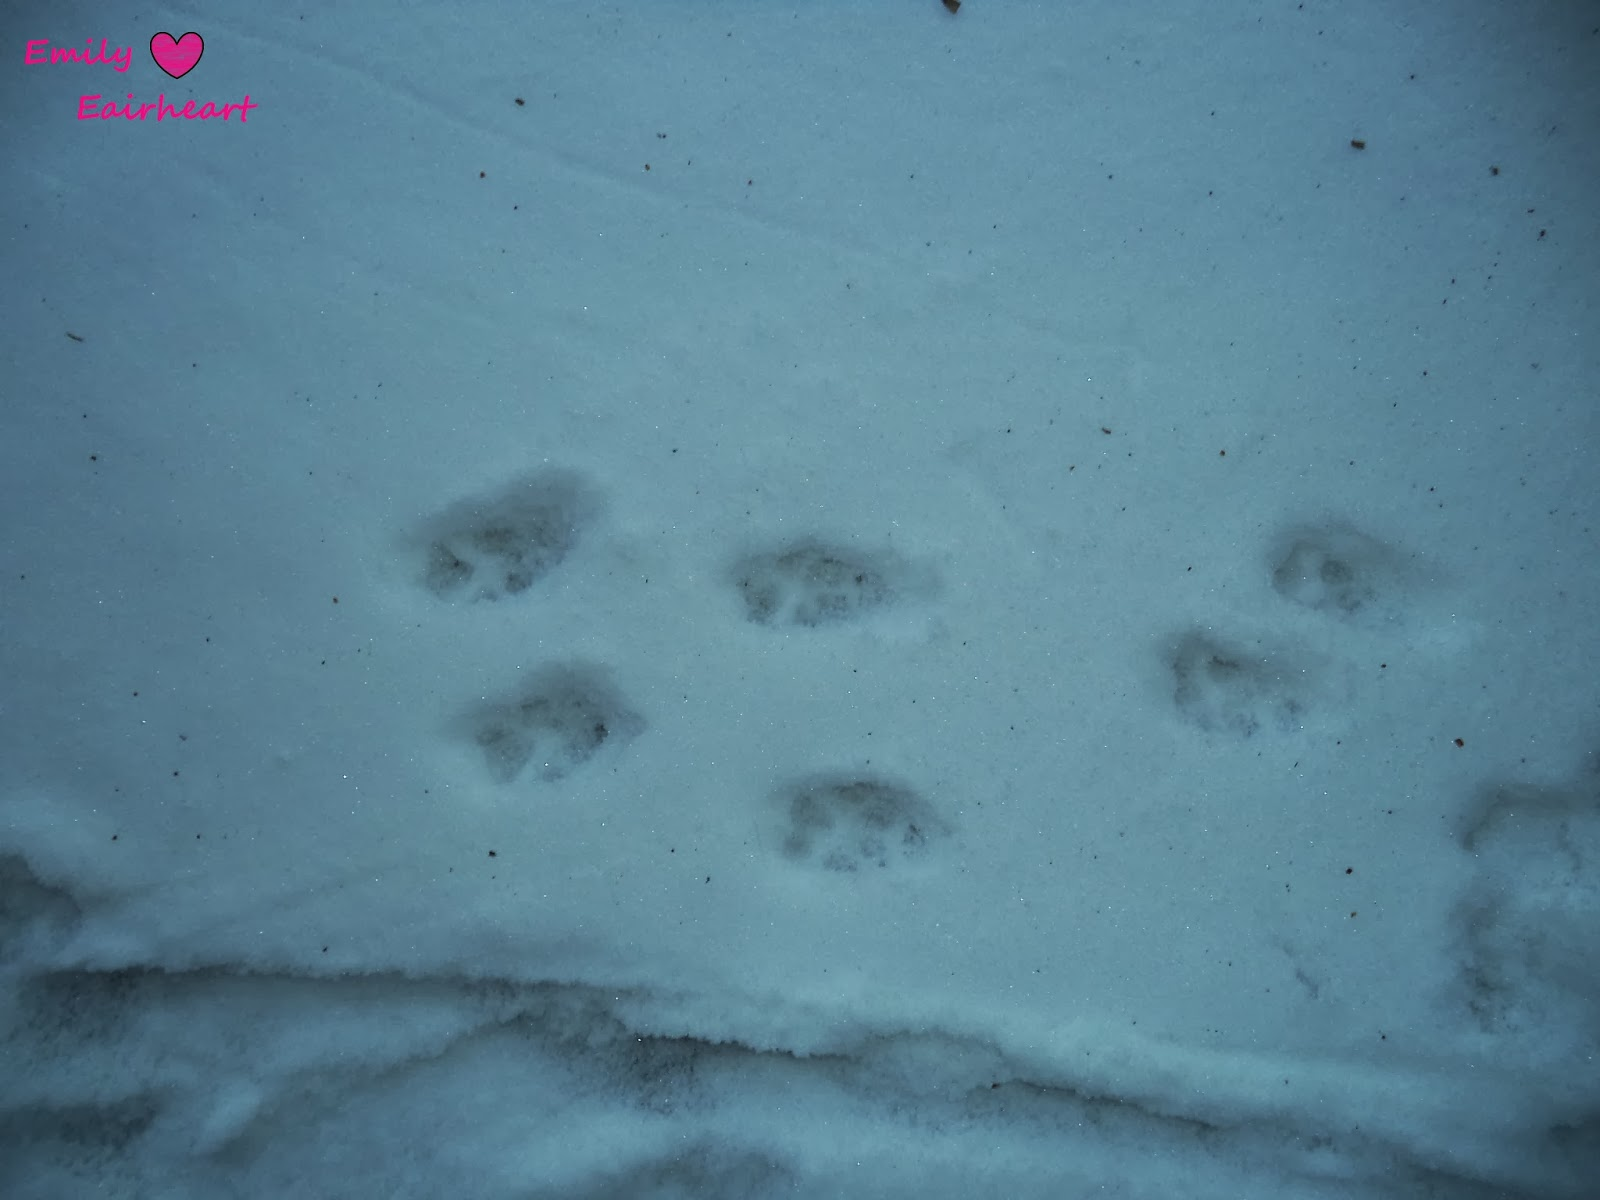 Chihuahua paw prints in the snow.